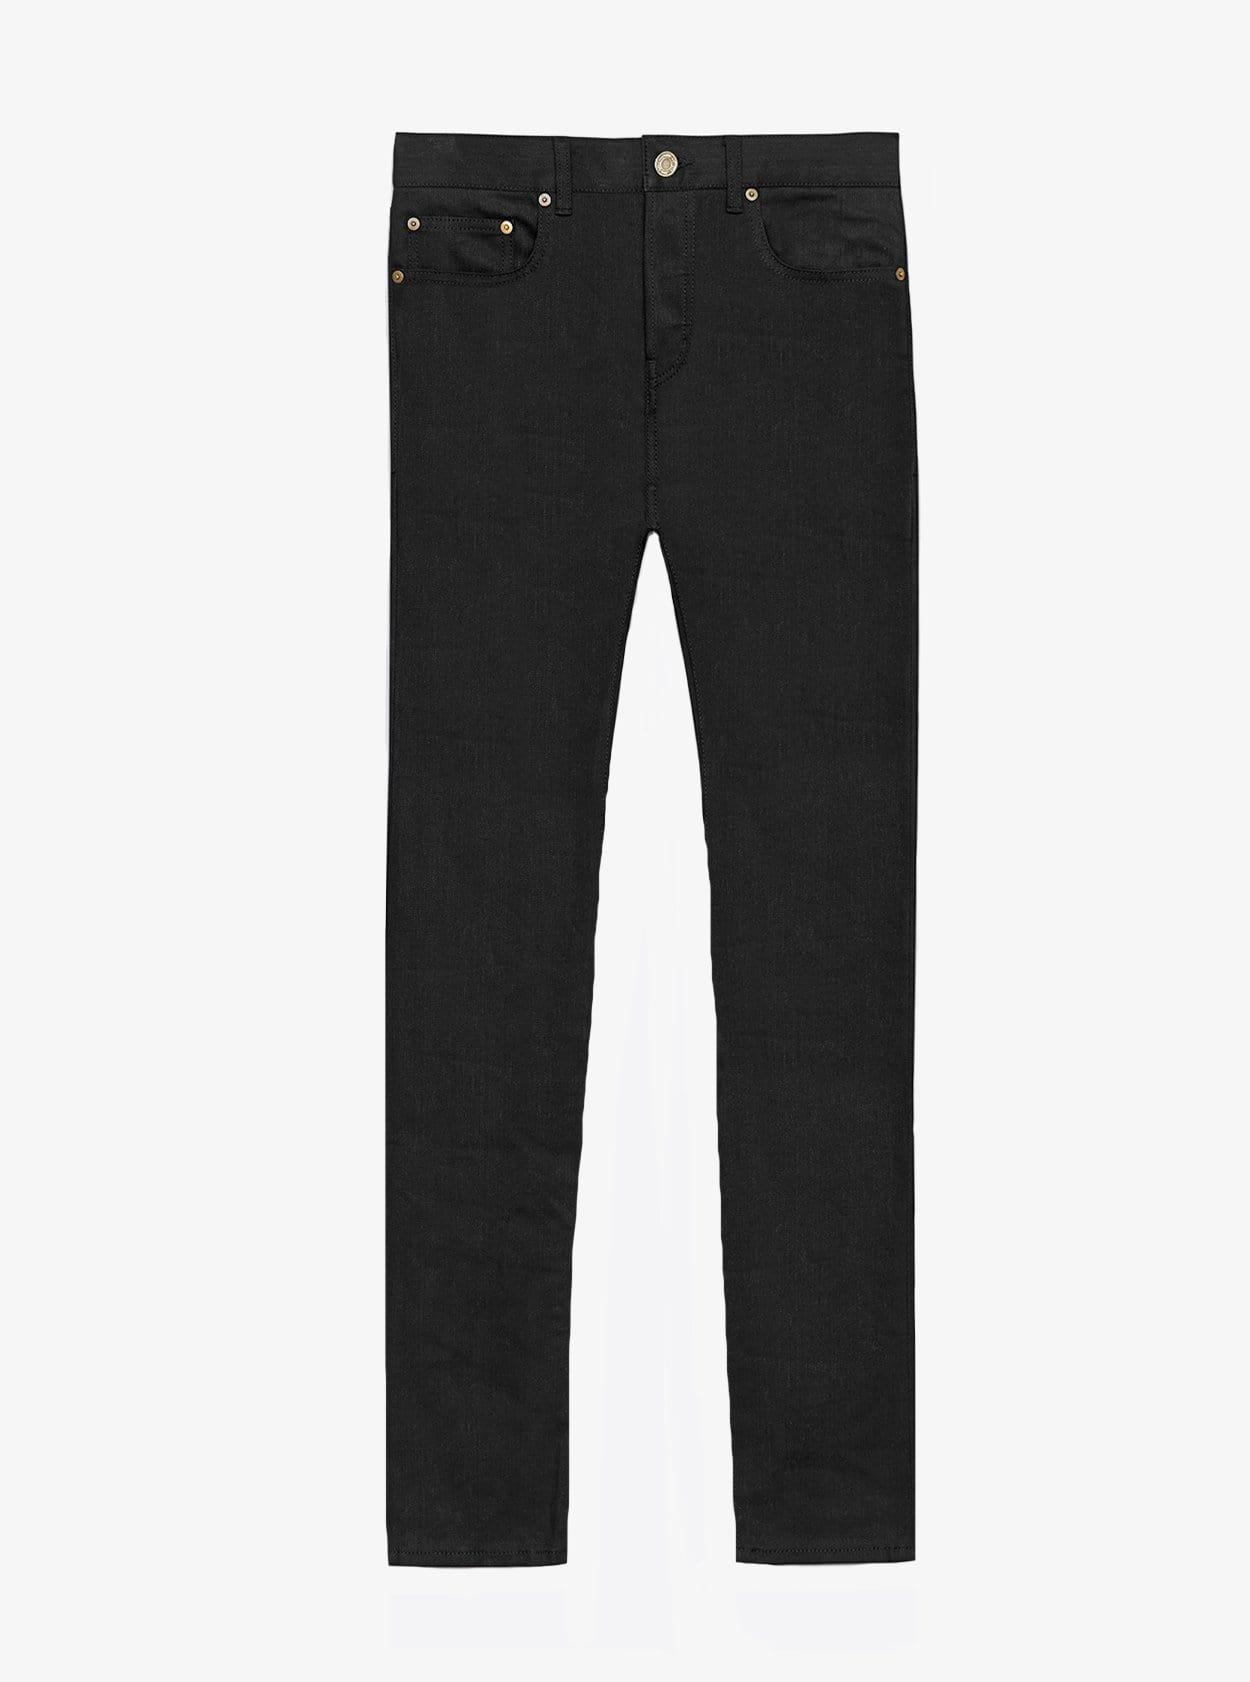 Jet black skinny fit denim jeans by profound aesthetic